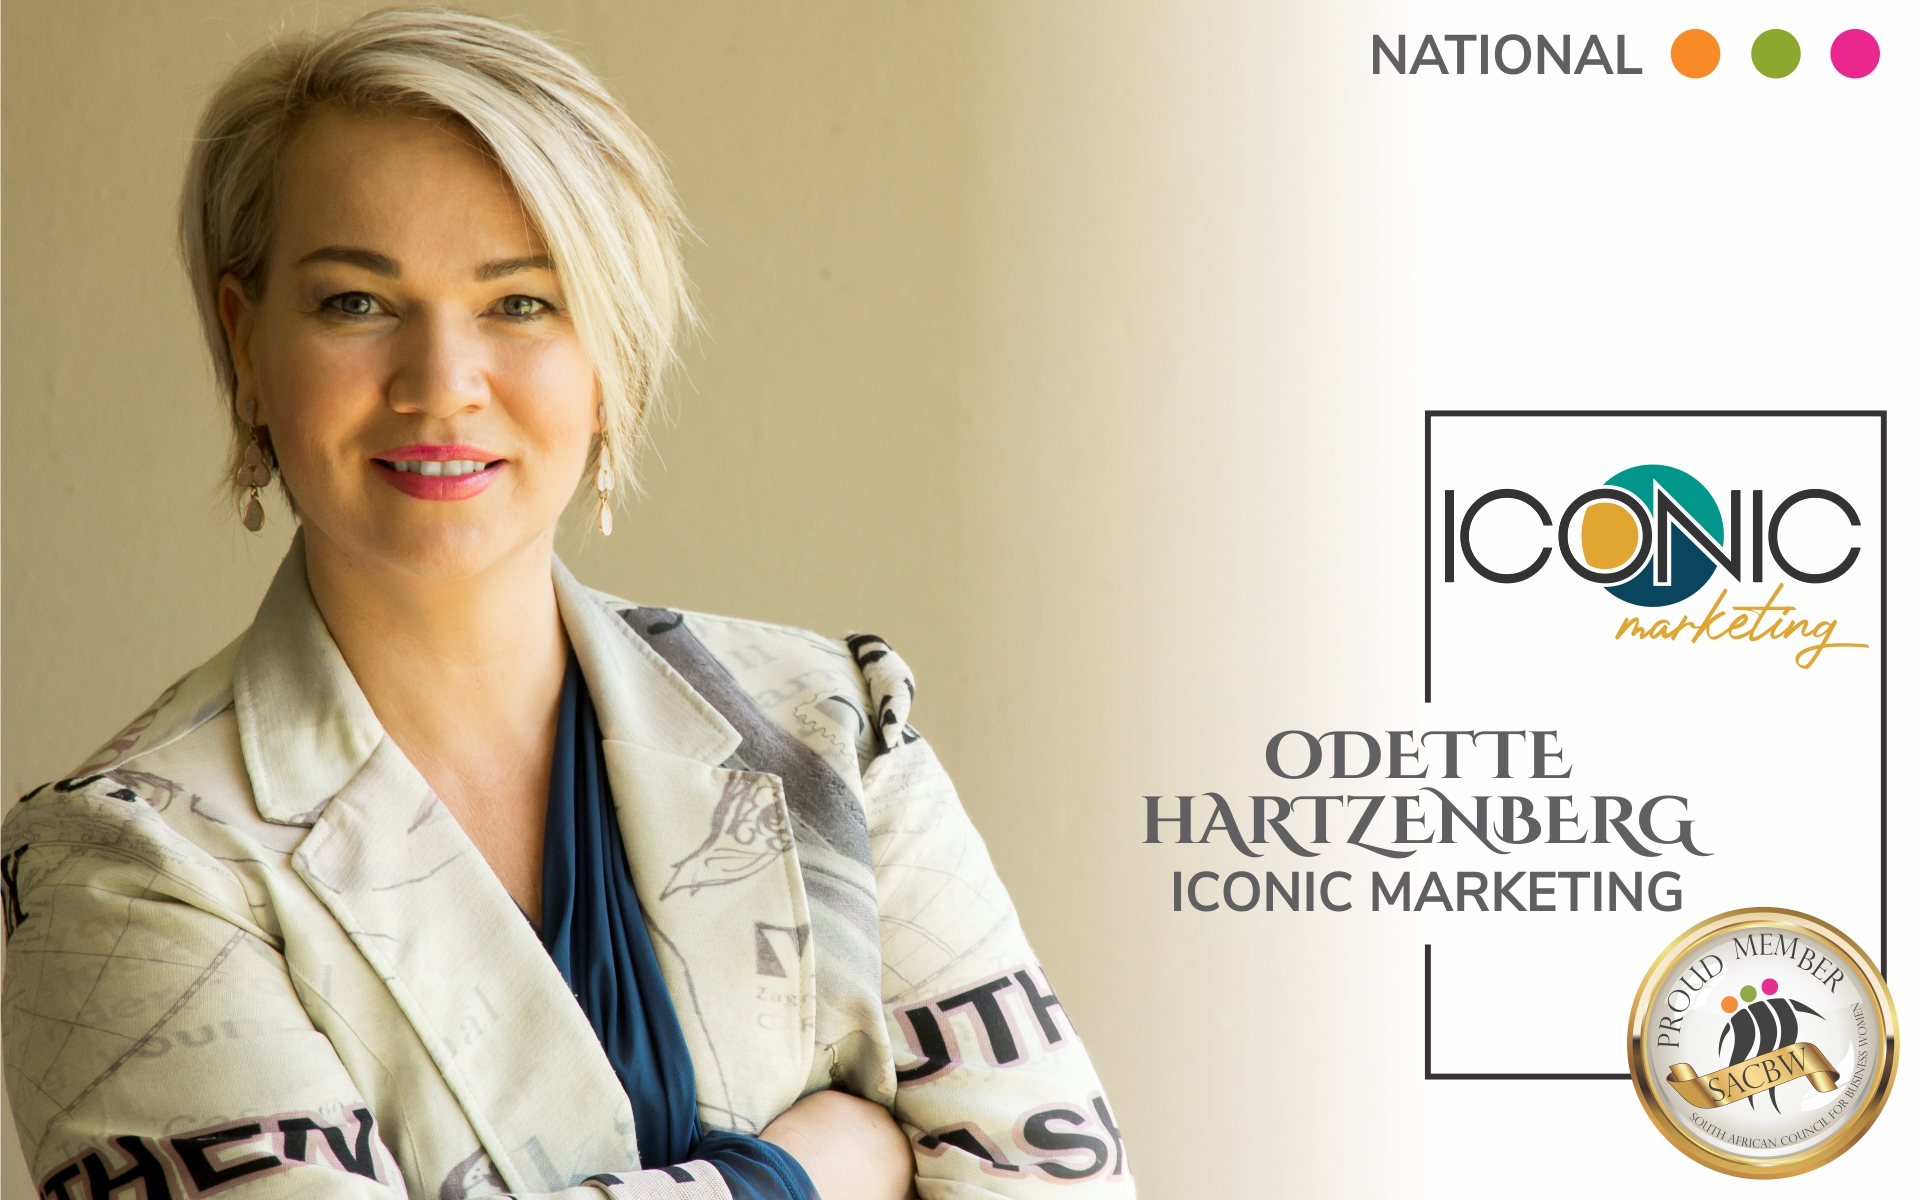 Odette Hartzenberg is a Graphic designer. Iconic Marketing focus on online marketing, Brand Identity Development and website development.